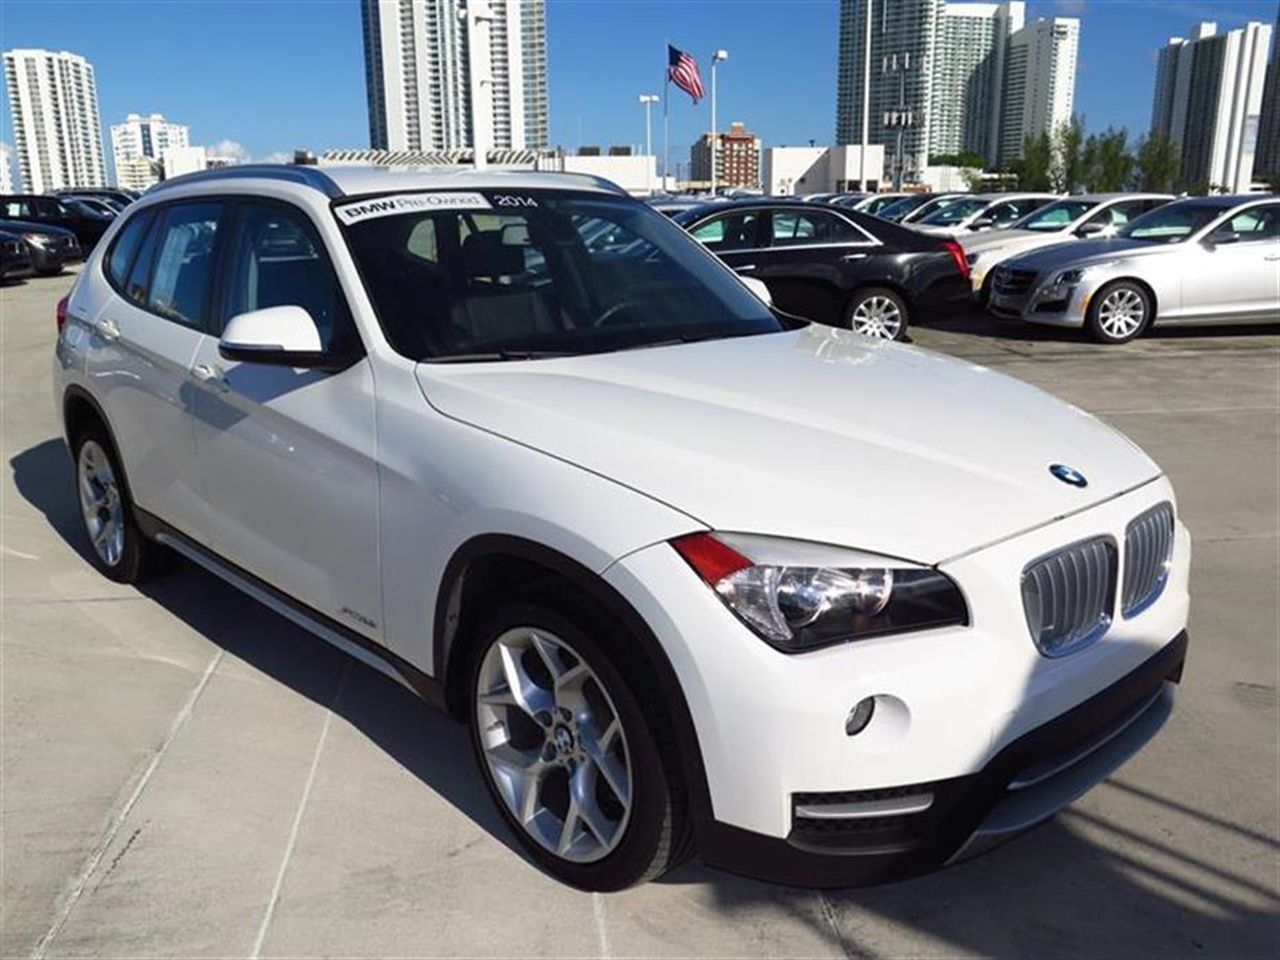 2014 BMW X1 RWD 4dr sDrive28i 10063 miles 2 Seatback Storage Pockets 3 12V DC Power Outlets LEA